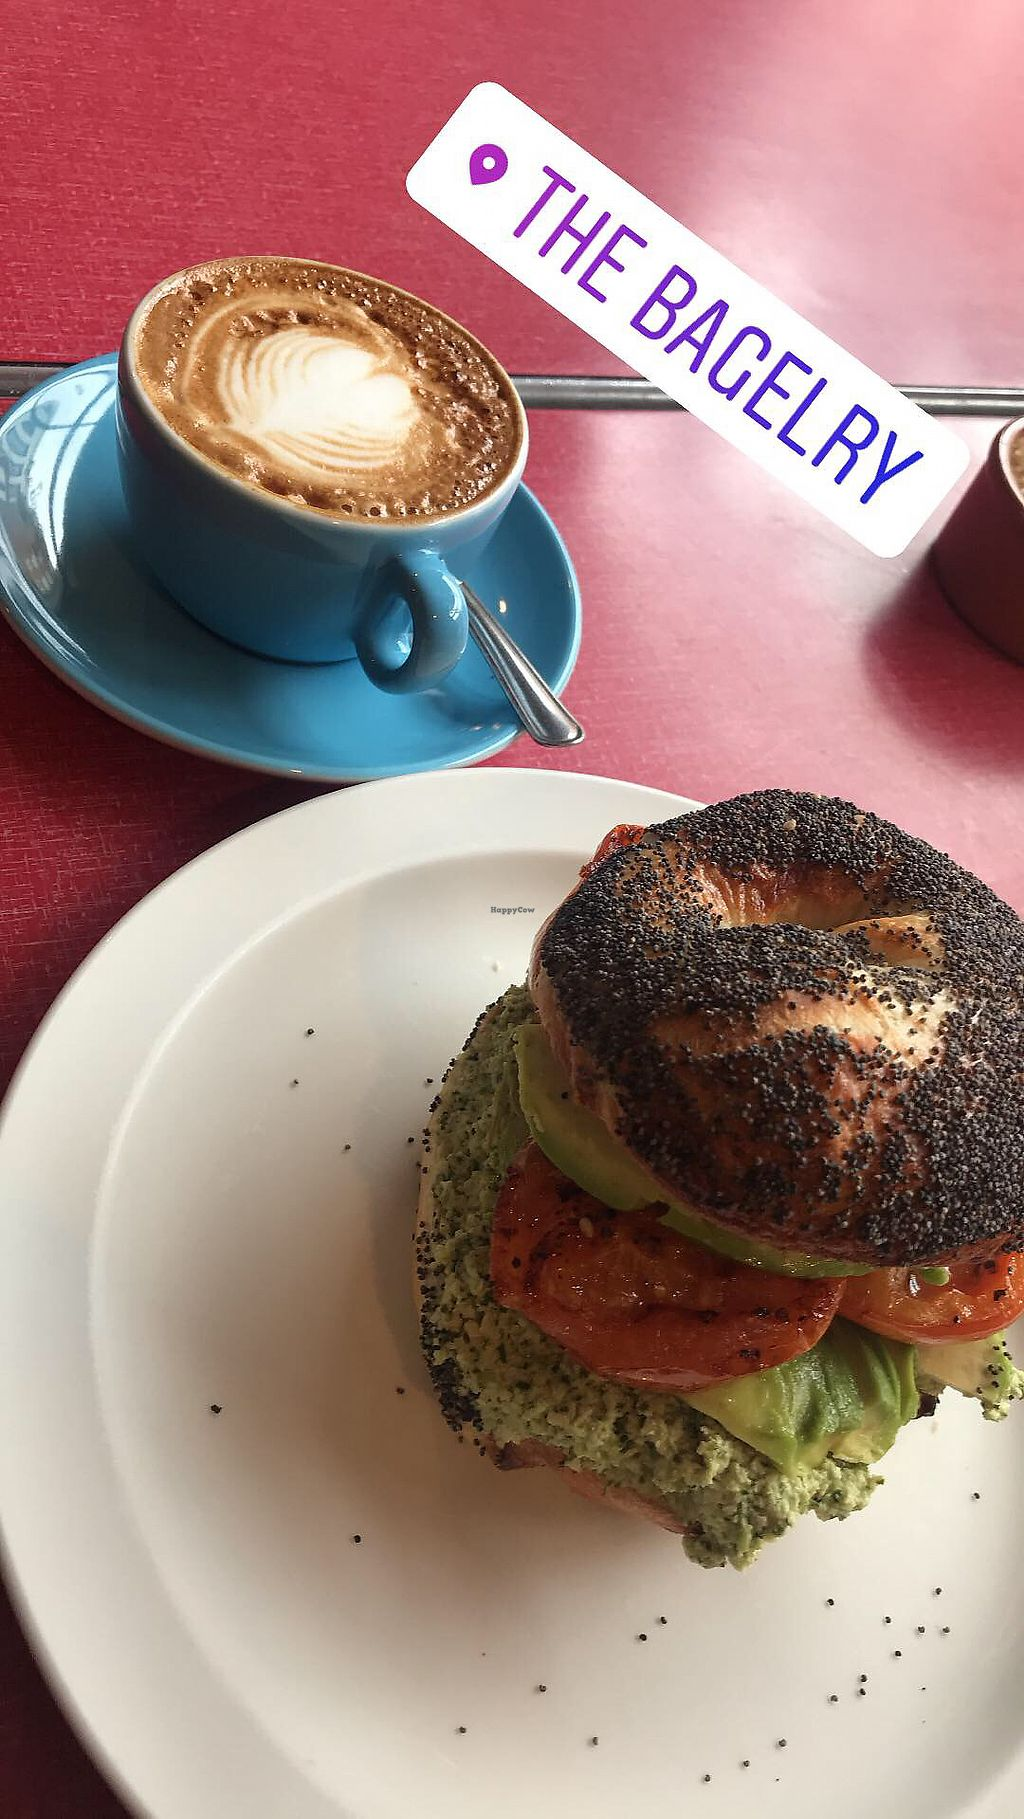 """Photo of The Bagelry   by <a href=""""/members/profile/Mikeando"""">Mikeando</a> <br/>Vegan Bagel @ flat white with soy <br/> March 5, 2018  - <a href='/contact/abuse/image/67526/367125'>Report</a>"""